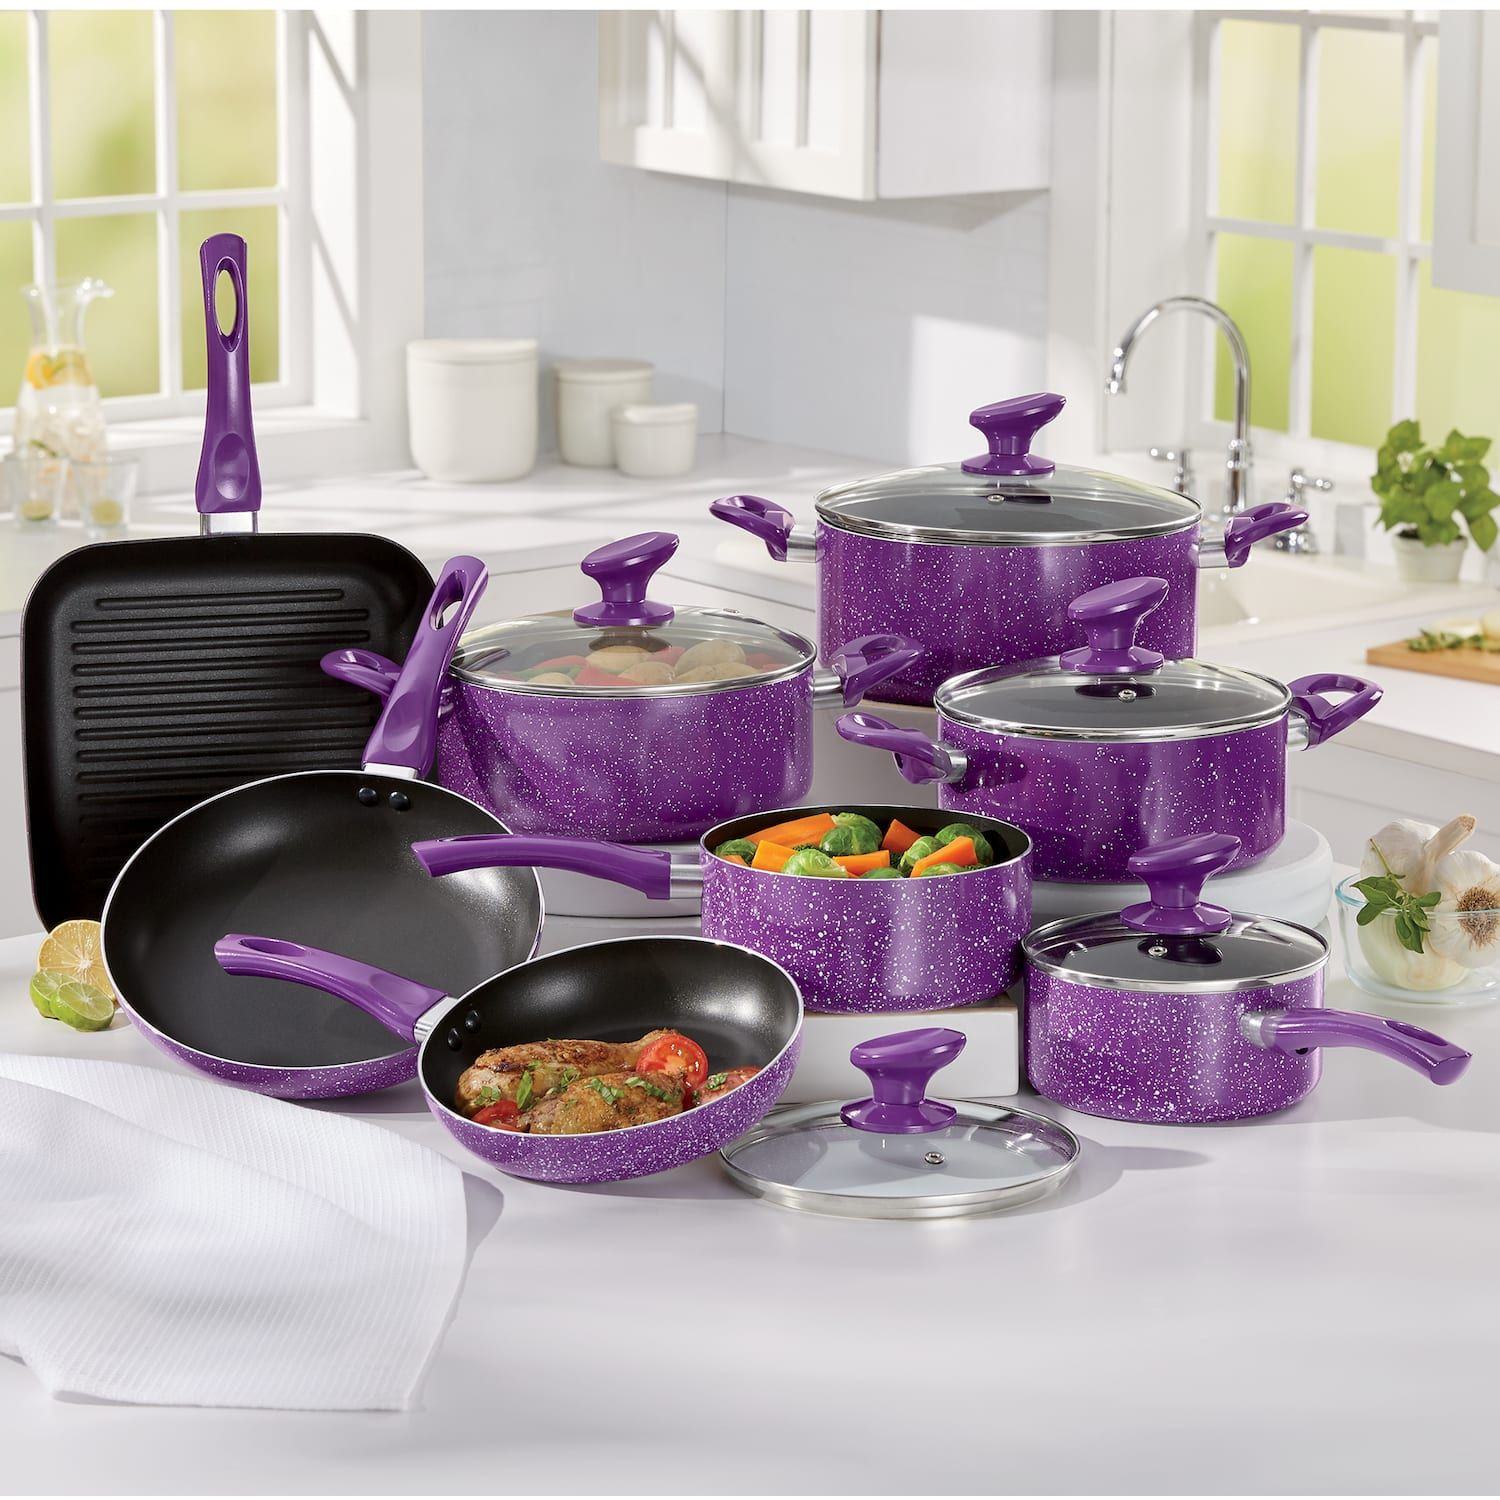 13 Piece Granite Aluminum Cookware Set In 2020 Cookware Set